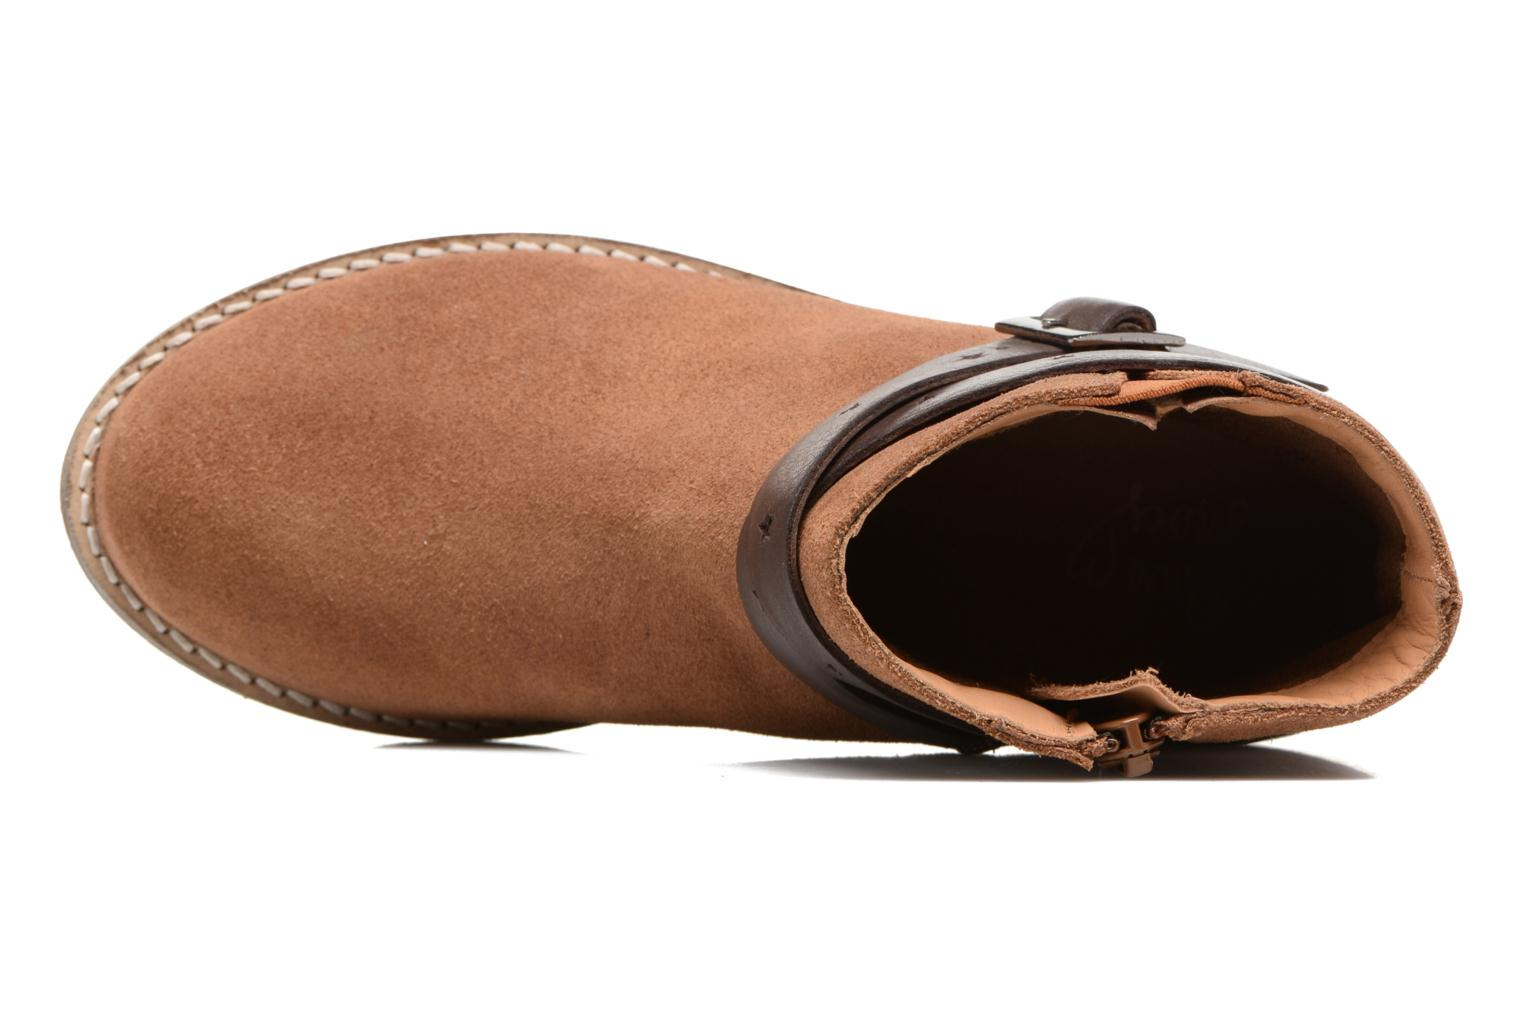 SELIA LEATHER Tan